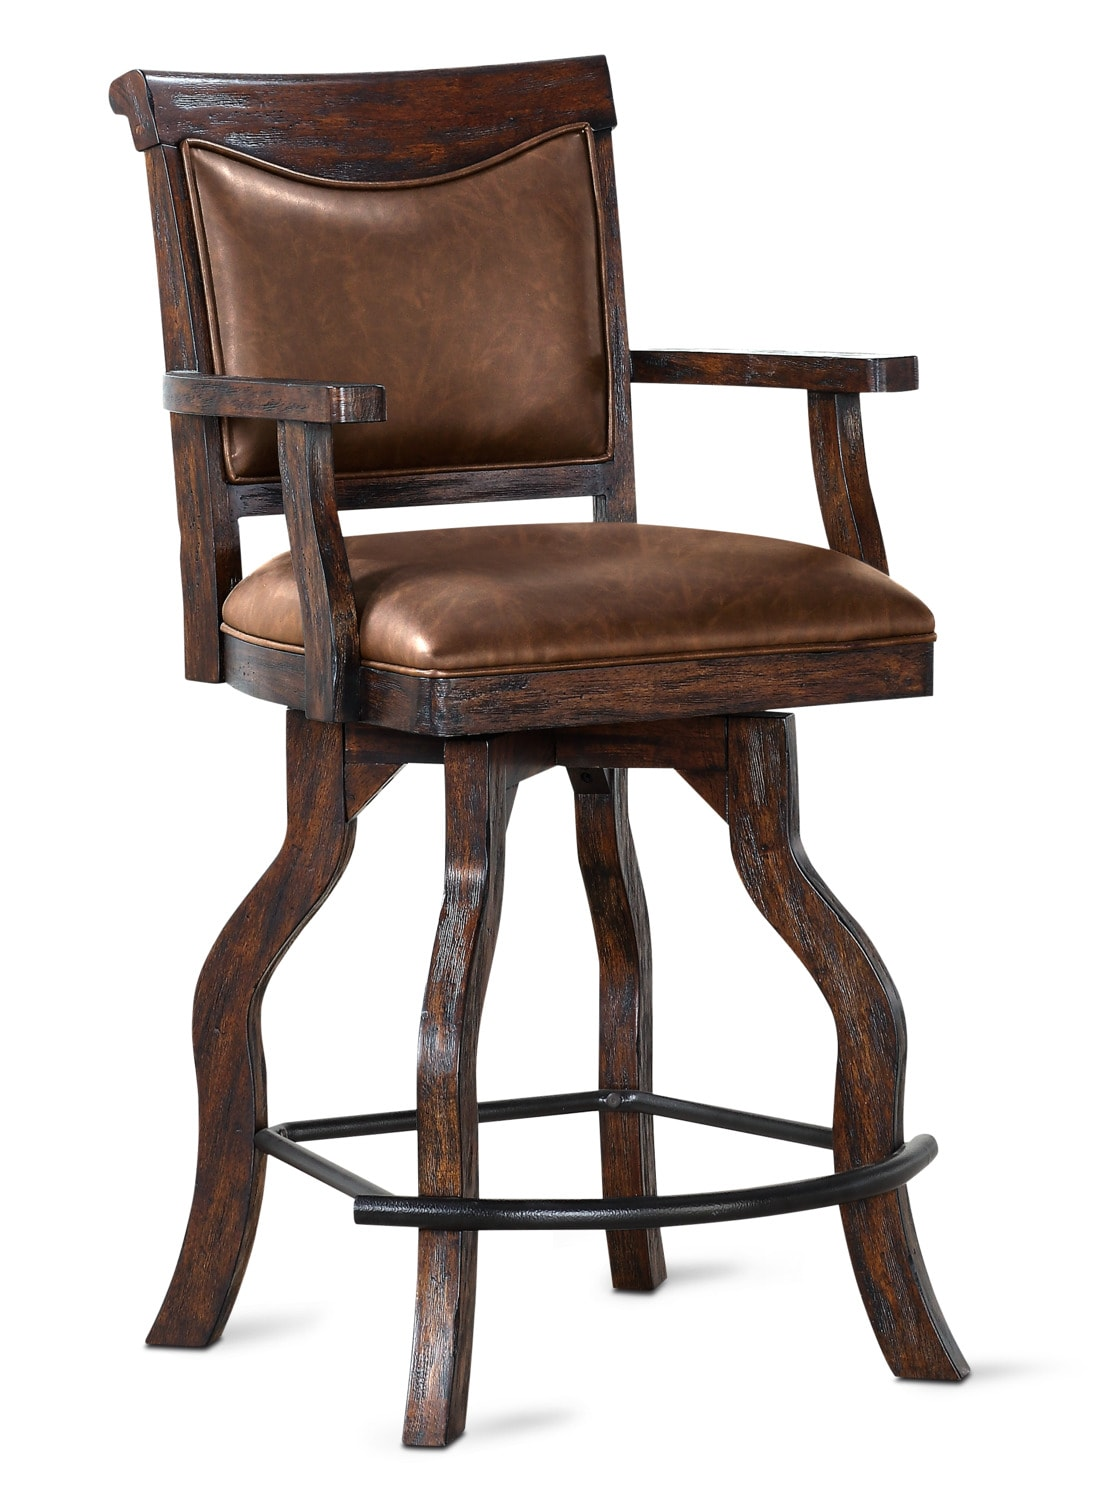 Dining Room Furniture - Sheffield Counter-Height Upholstered Stool - Walnut